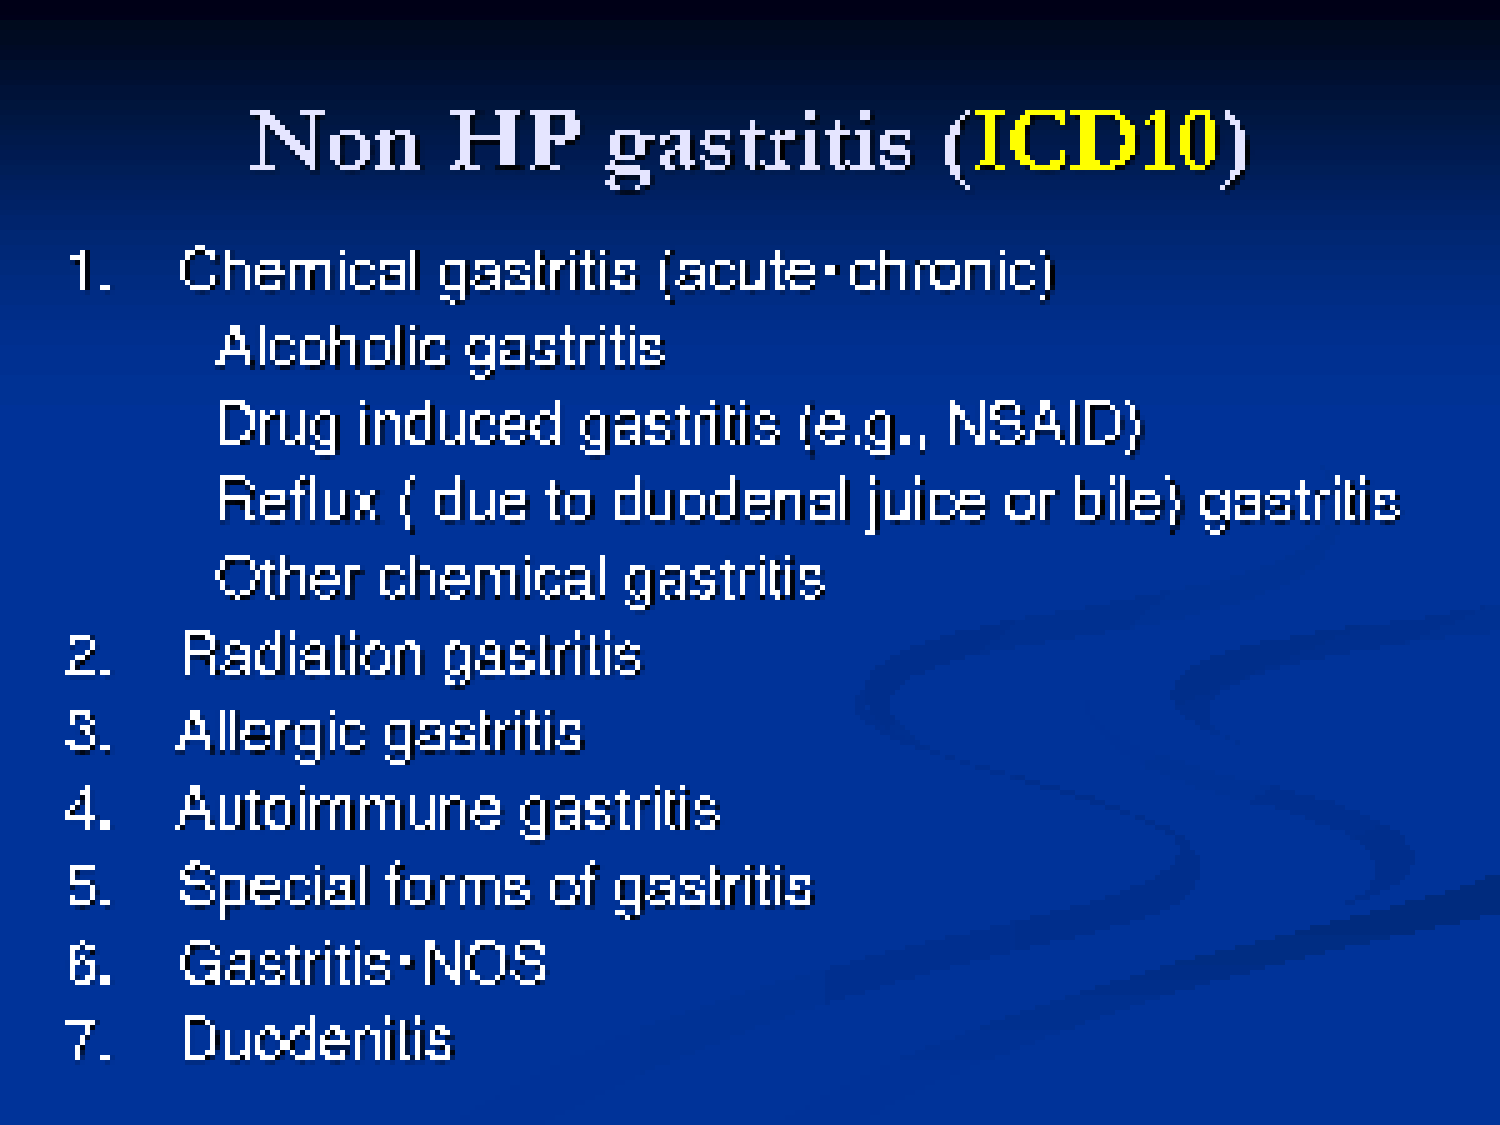 nonsteroidal gastropathy